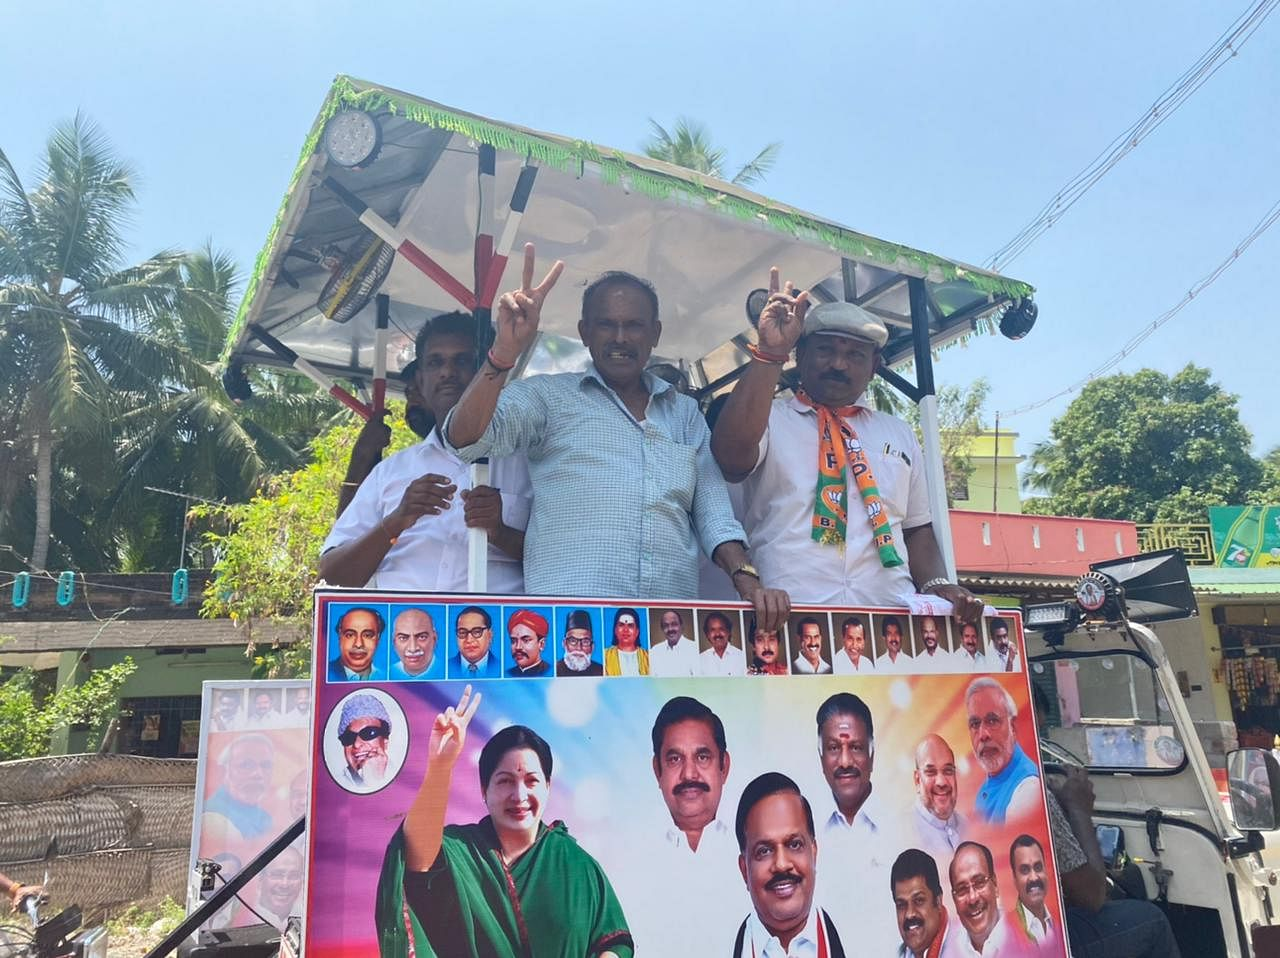 AIADMK workers during the rally in Thovalai. | Photo: Revathi Krishnan/ThePrint